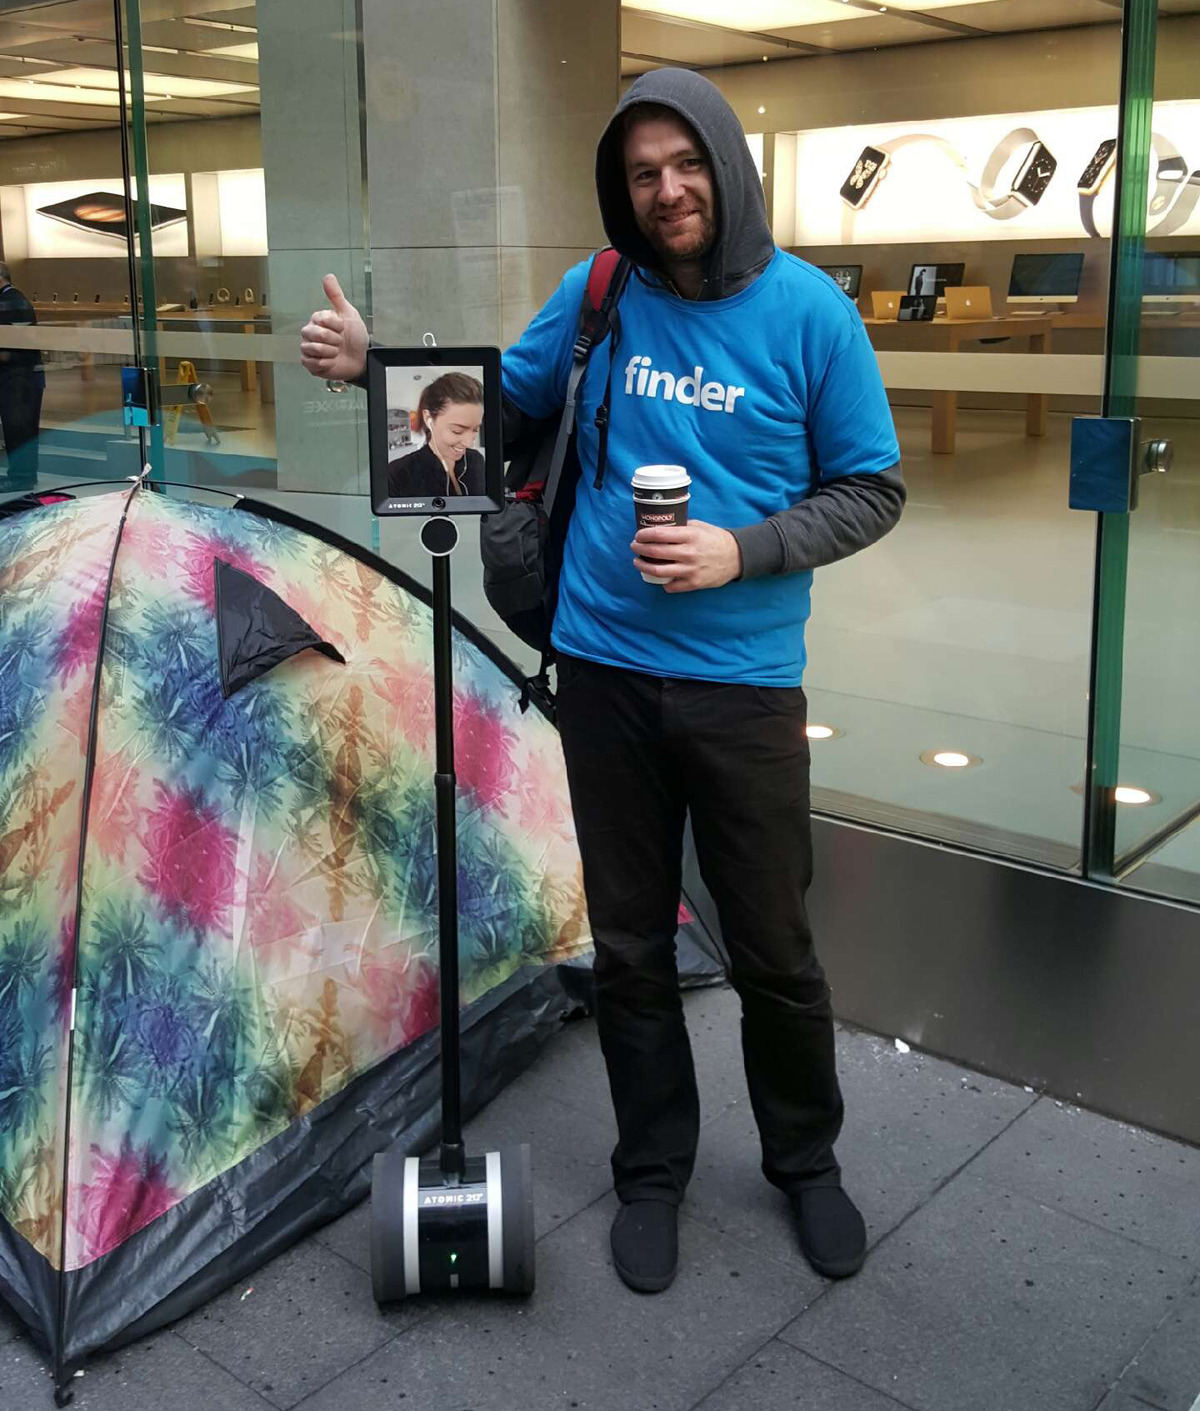 In fila all'Apple Store con un robot per la telepresenza